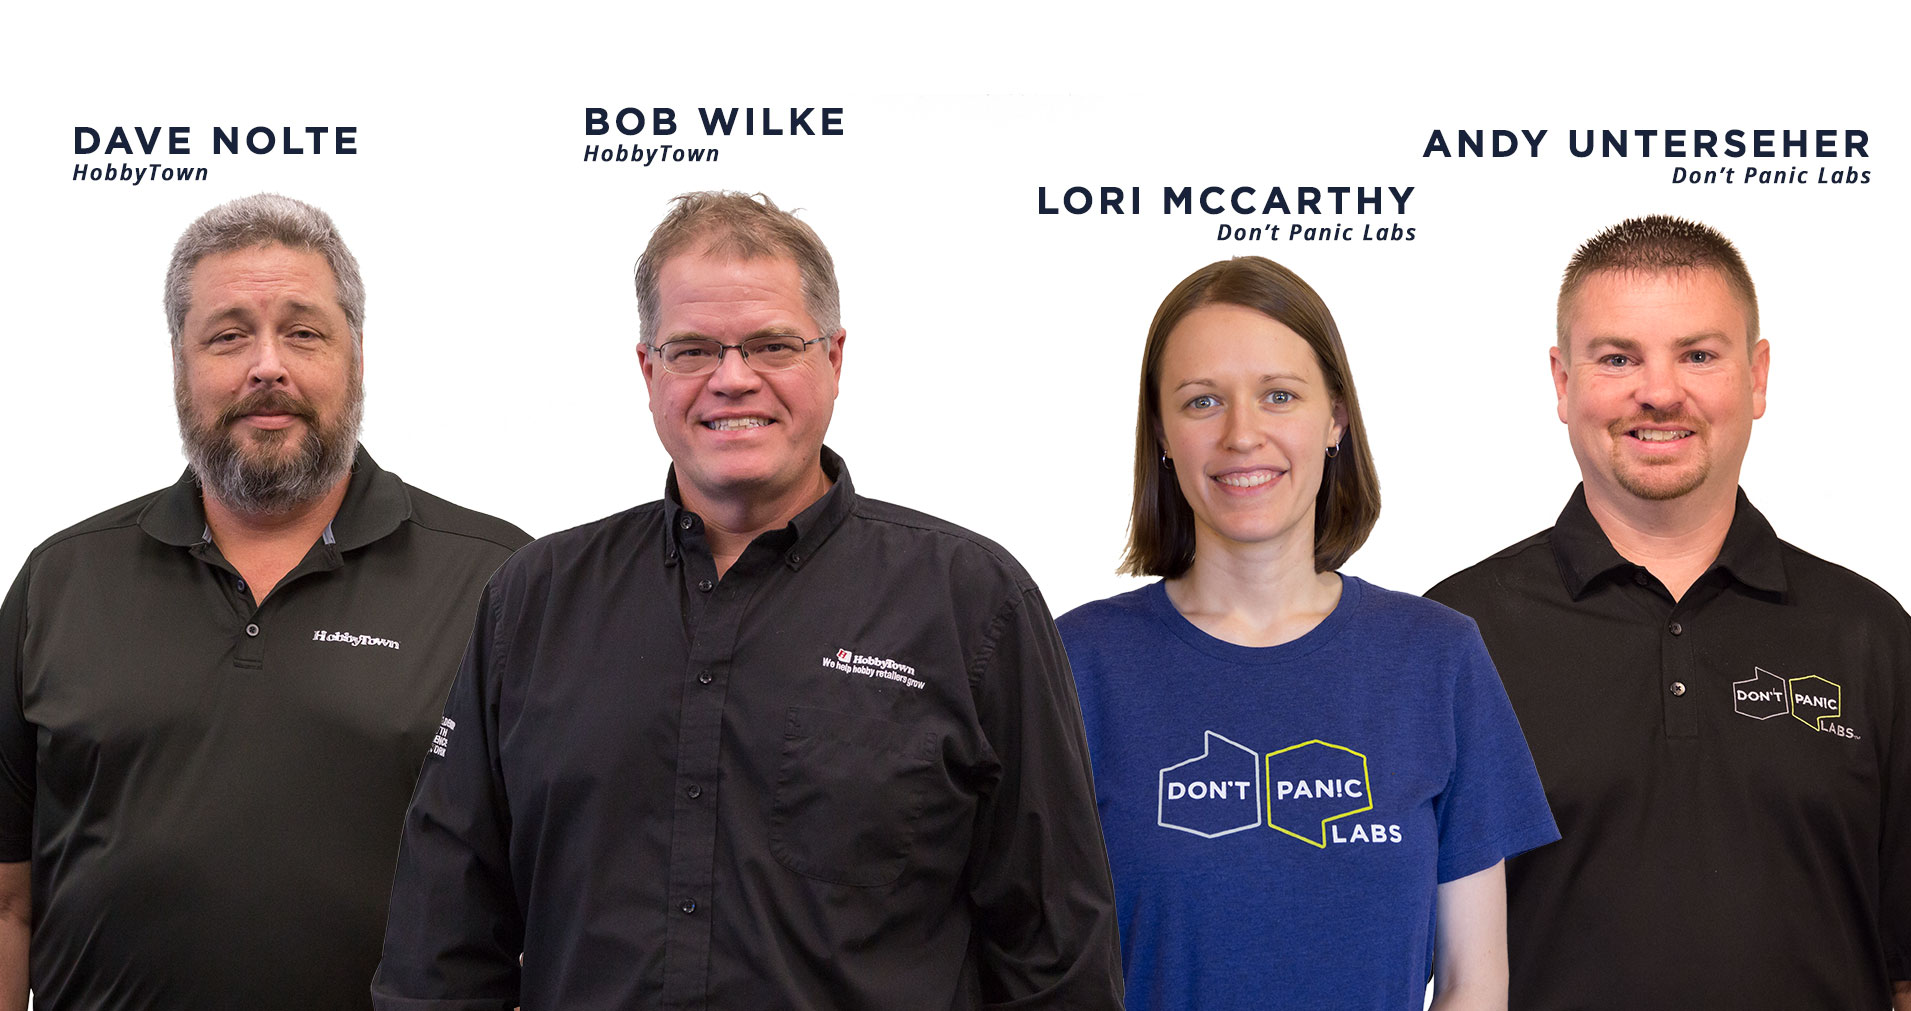 Dave Nolte and Bob Wilke of HobbyTown & Lori McCarthy and Andy Unterseher of Don't Panic Labs